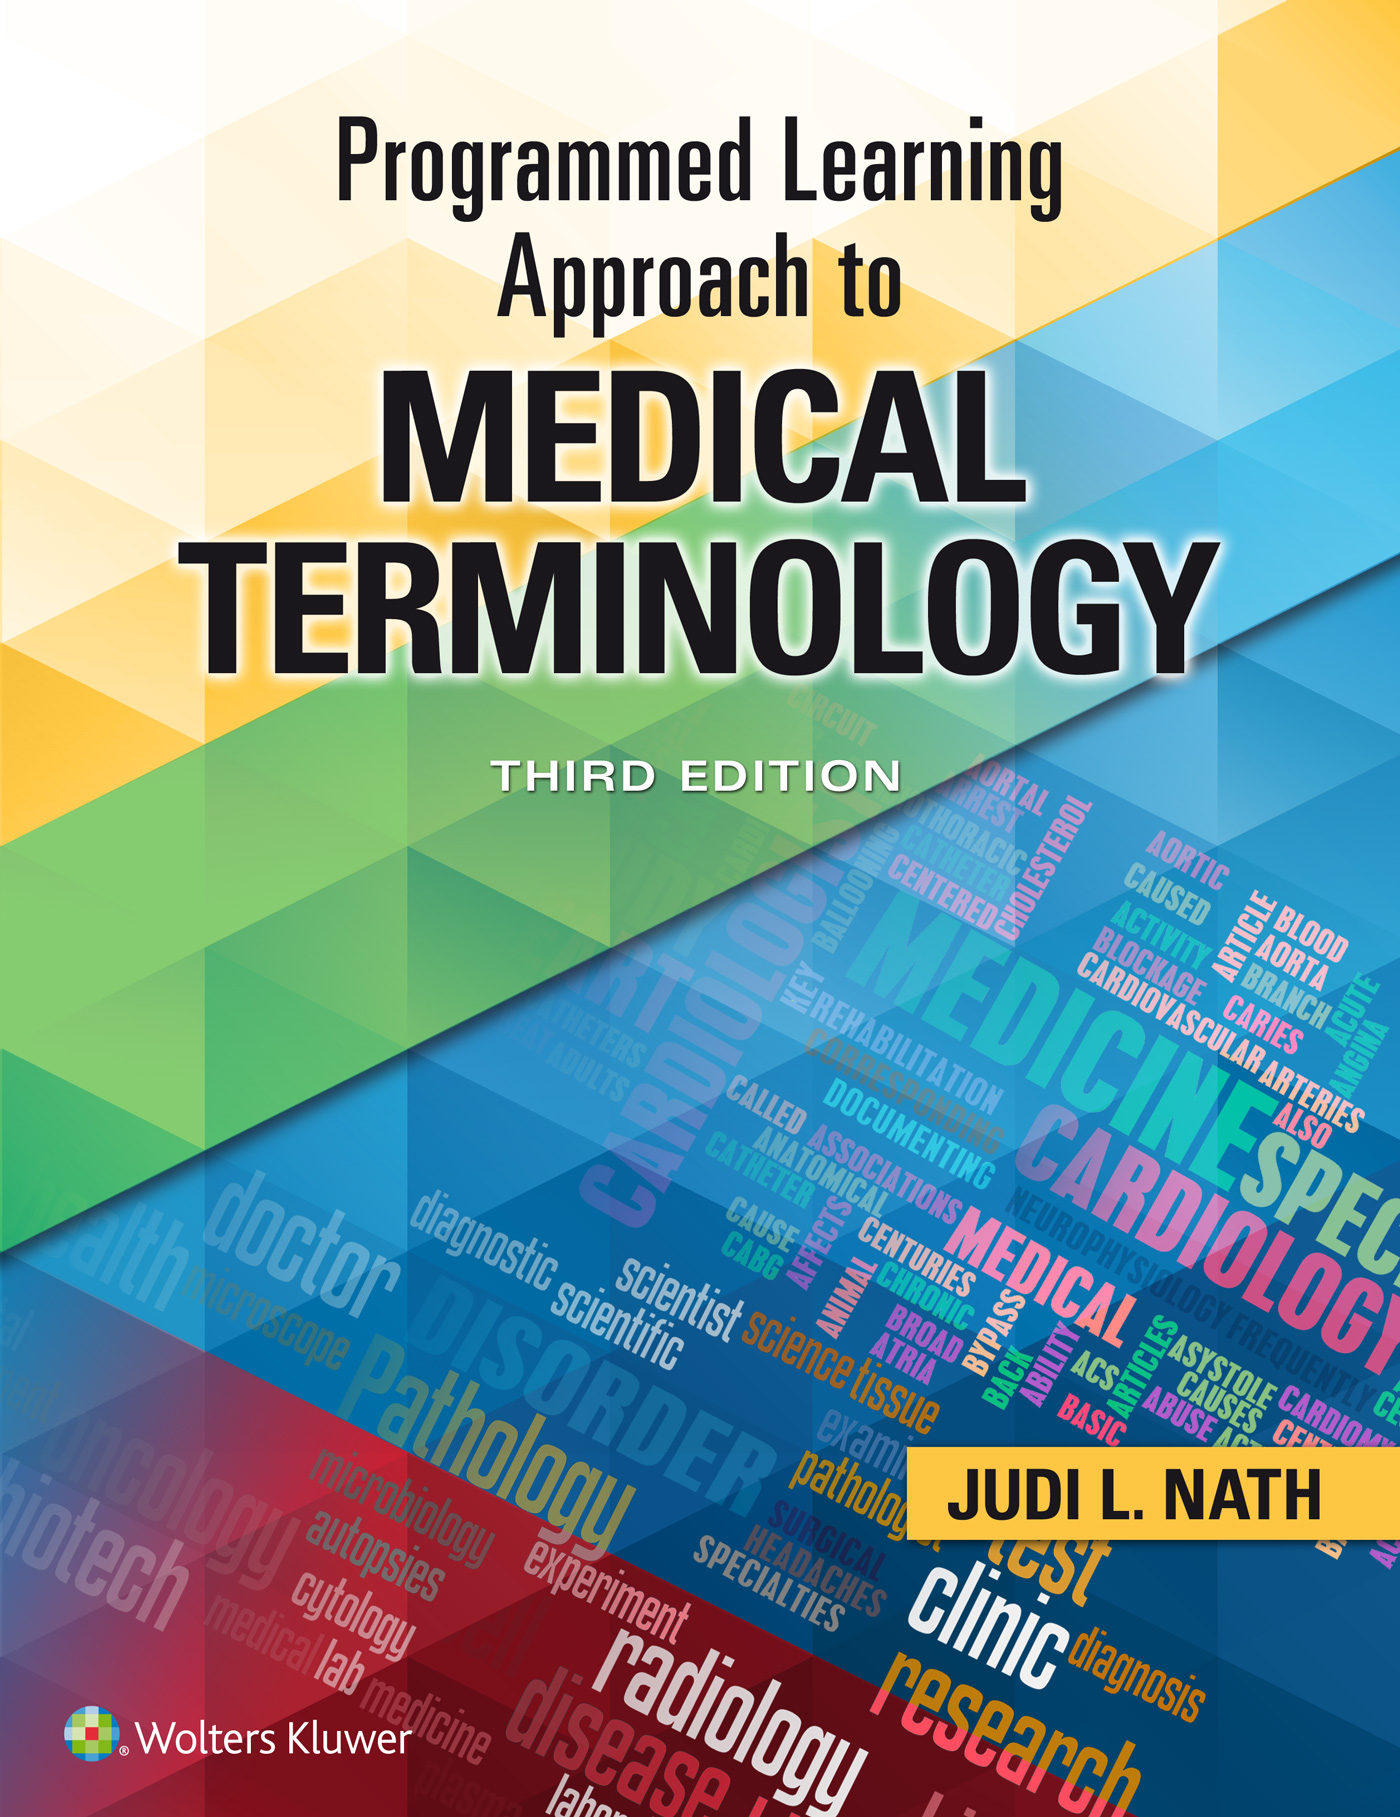 Medical transcription self assessment 2 ebook management and epublishing solutions array programmed learning approach to medical terminology rh shop lww com fandeluxe Images